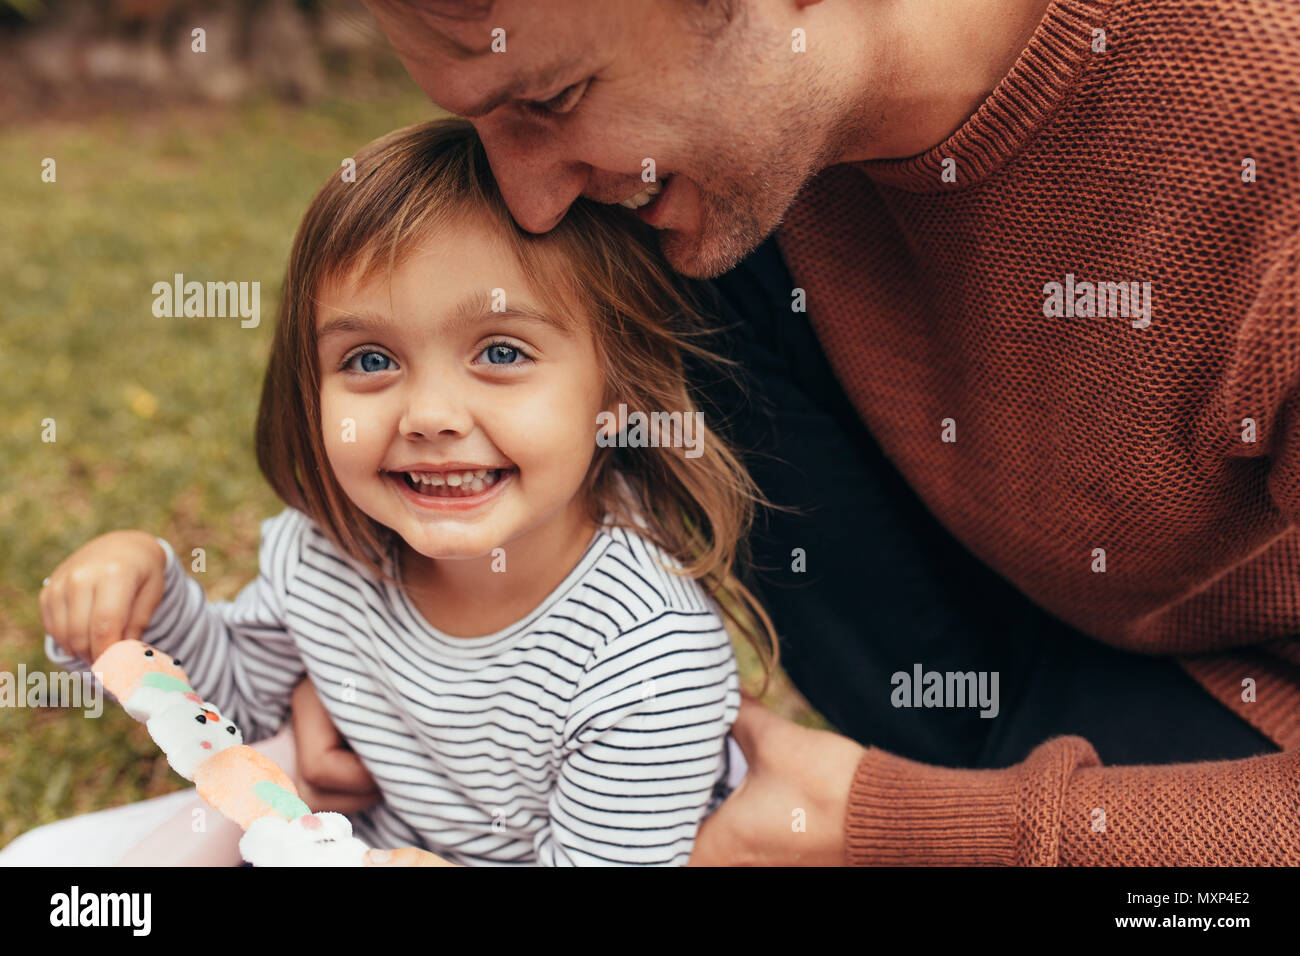 Smiling girl sitting with her father outdoors holding a sugar candy stick. Father and daughter spending time together eating sugar candy. - Stock Image